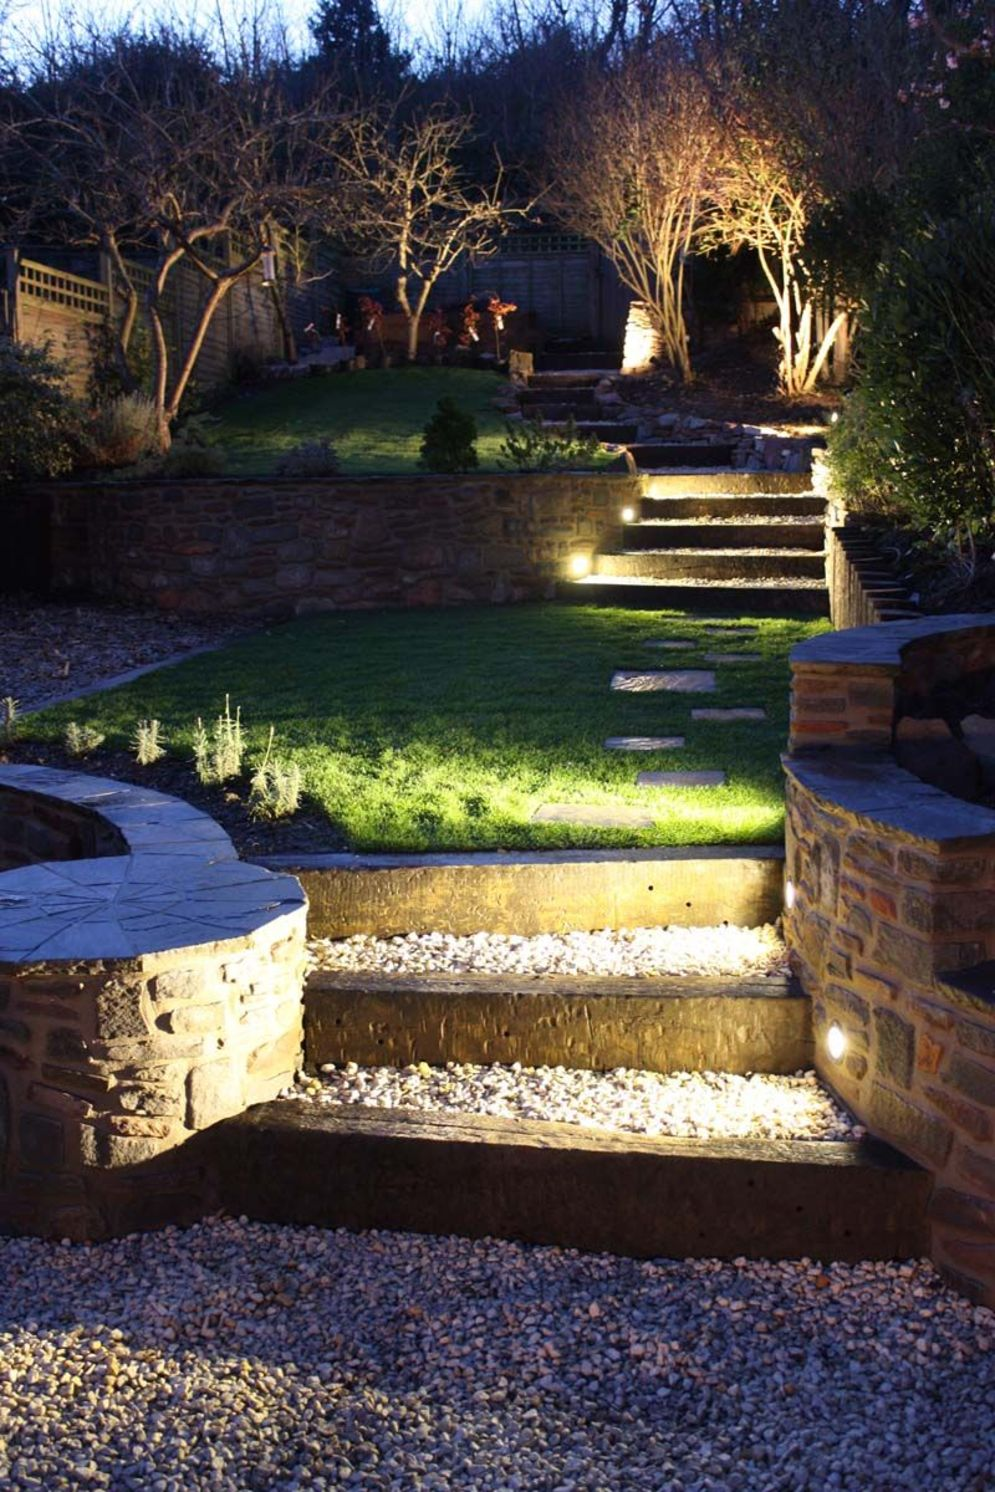 Lavish garden upgrade showing beautiful outdoor light schemes that liven up the landscape view Image 34